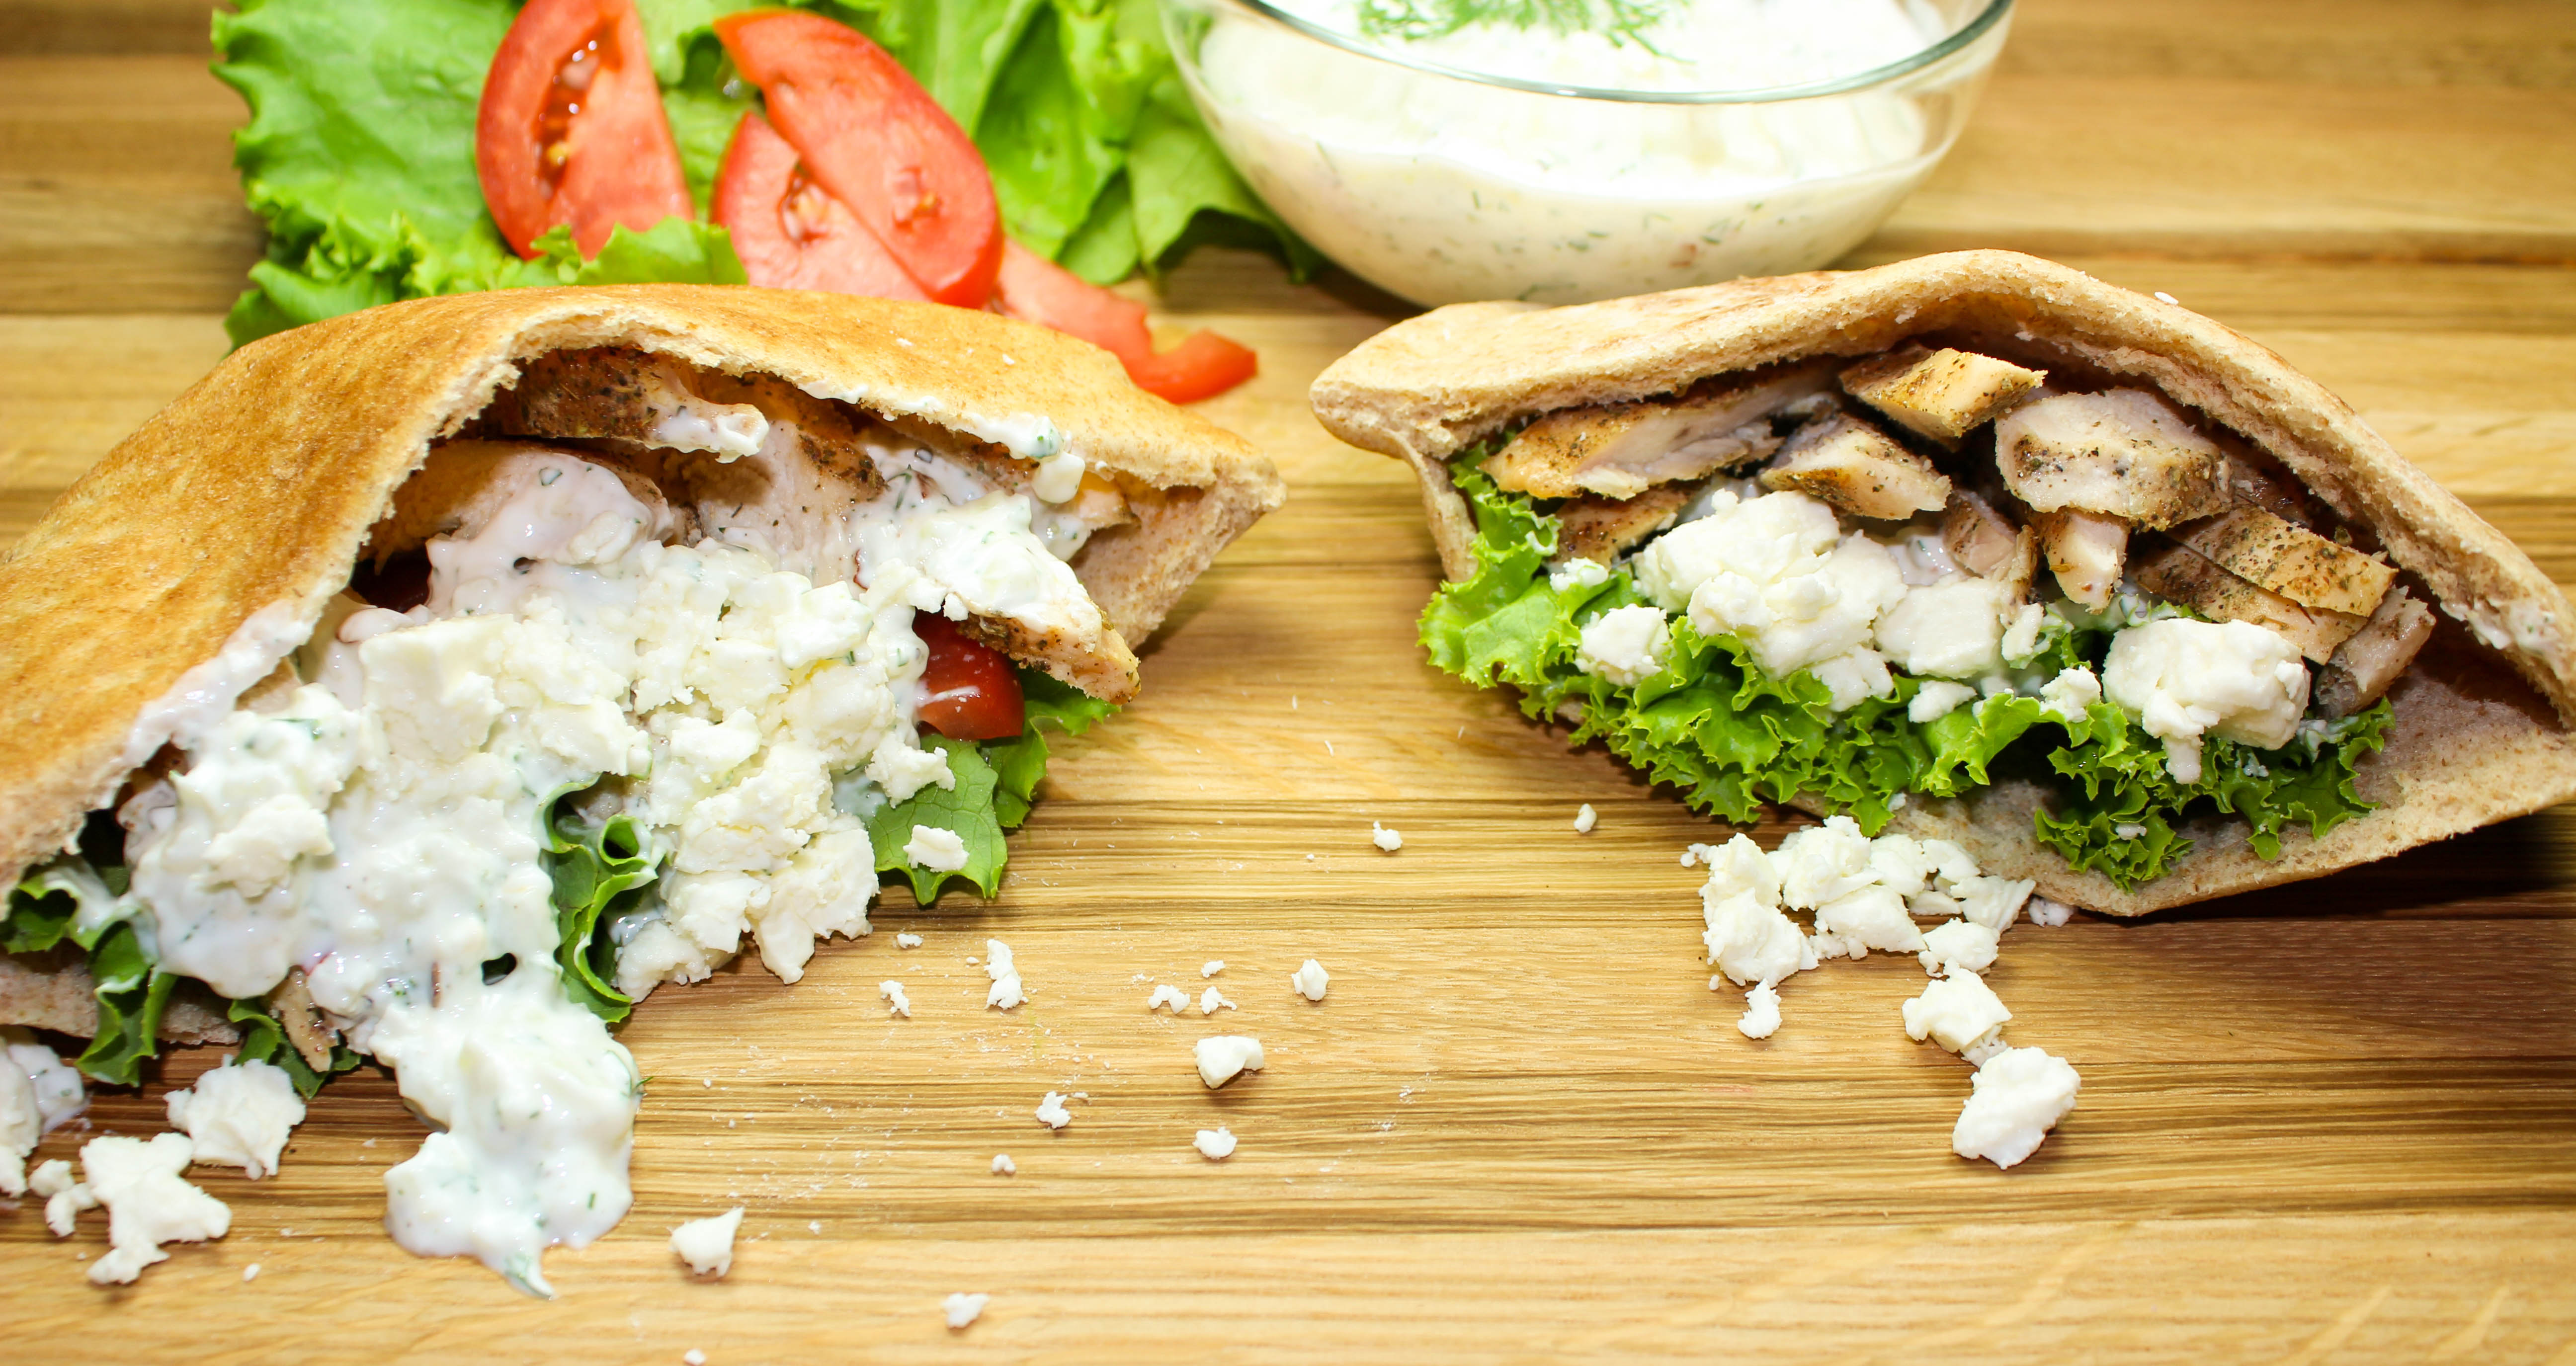 Healthy Chicken Gyros is a healthy version of traditional Gyro that's low fat but full of flavor. Great for a quick weeknight meal or for week day lunches! Weight Watchers friendly recipe. www.bitesofflavor.com